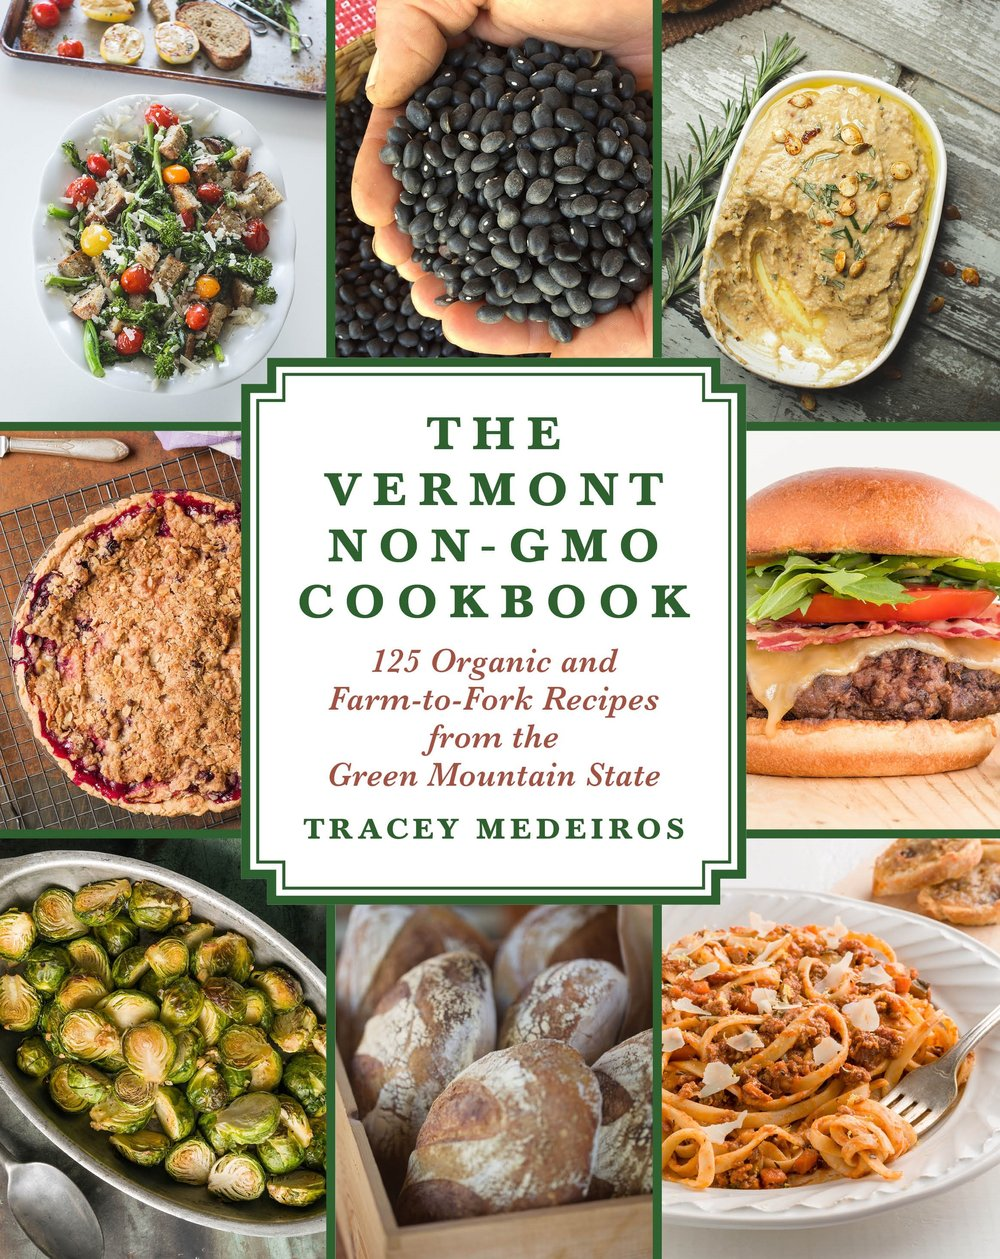 The Vermont Non-GMO Cookbook    So Much More Than a Cookbook   The Vermont Non-GMO Cookbook  honors the state's mission to connect with its local organic farmlands and the farmers who nurture and care for them. It also serves as a guide for eating organically and non-GMO in Vermont. The book celebrates the region's esteemed organic food producers, farmers, cheesemakers, and dairy farmers as well as the the chefs who partner with them to create delicious, innovative, organic, and non-GMO recipes, such as:  ·  Maple Kale Salad with Toasted Almonds, Parmigiano-Reggiano Cheese, and Rustic Croutons ·  Oven-Roasted Organic Pulled Pork Sandwiches with Spicy Apple Cider Vinegar Slaw ·  Baked Frittata with Baby Spinach, Roasted Red Peppers, and Quark Cheese ·  Old-Fashioned Organic Cheesecake  In addition to mouthwatering recipes,  The Vermont Non-GMO Cookbook  includes profiles of pioneering organic Vermont farmers, chefs, and non-GMO artisans. It will take you on a culinary adventure throughout the Green Mountain State, from Ben & Jerry's homemade ice cream to internationally inspired Kismet Kitchen to the busy Butternut Mountain Farm. Supported by rustic food photography, it will awaken and inspire your palate to the exciting options being offered by Vermont's burgeoning local, organic, and non-GMO food scene.    The Vermont Non-GMO Cookbook  is a 2018 Readable Feast Cookbook Awards Finalist.     Skyhorse Publishing, Inc.  117 Main Street Suite 202 Brattleboro, VT 05301 Telephone: 802-579-1054    Link to Amazon.com